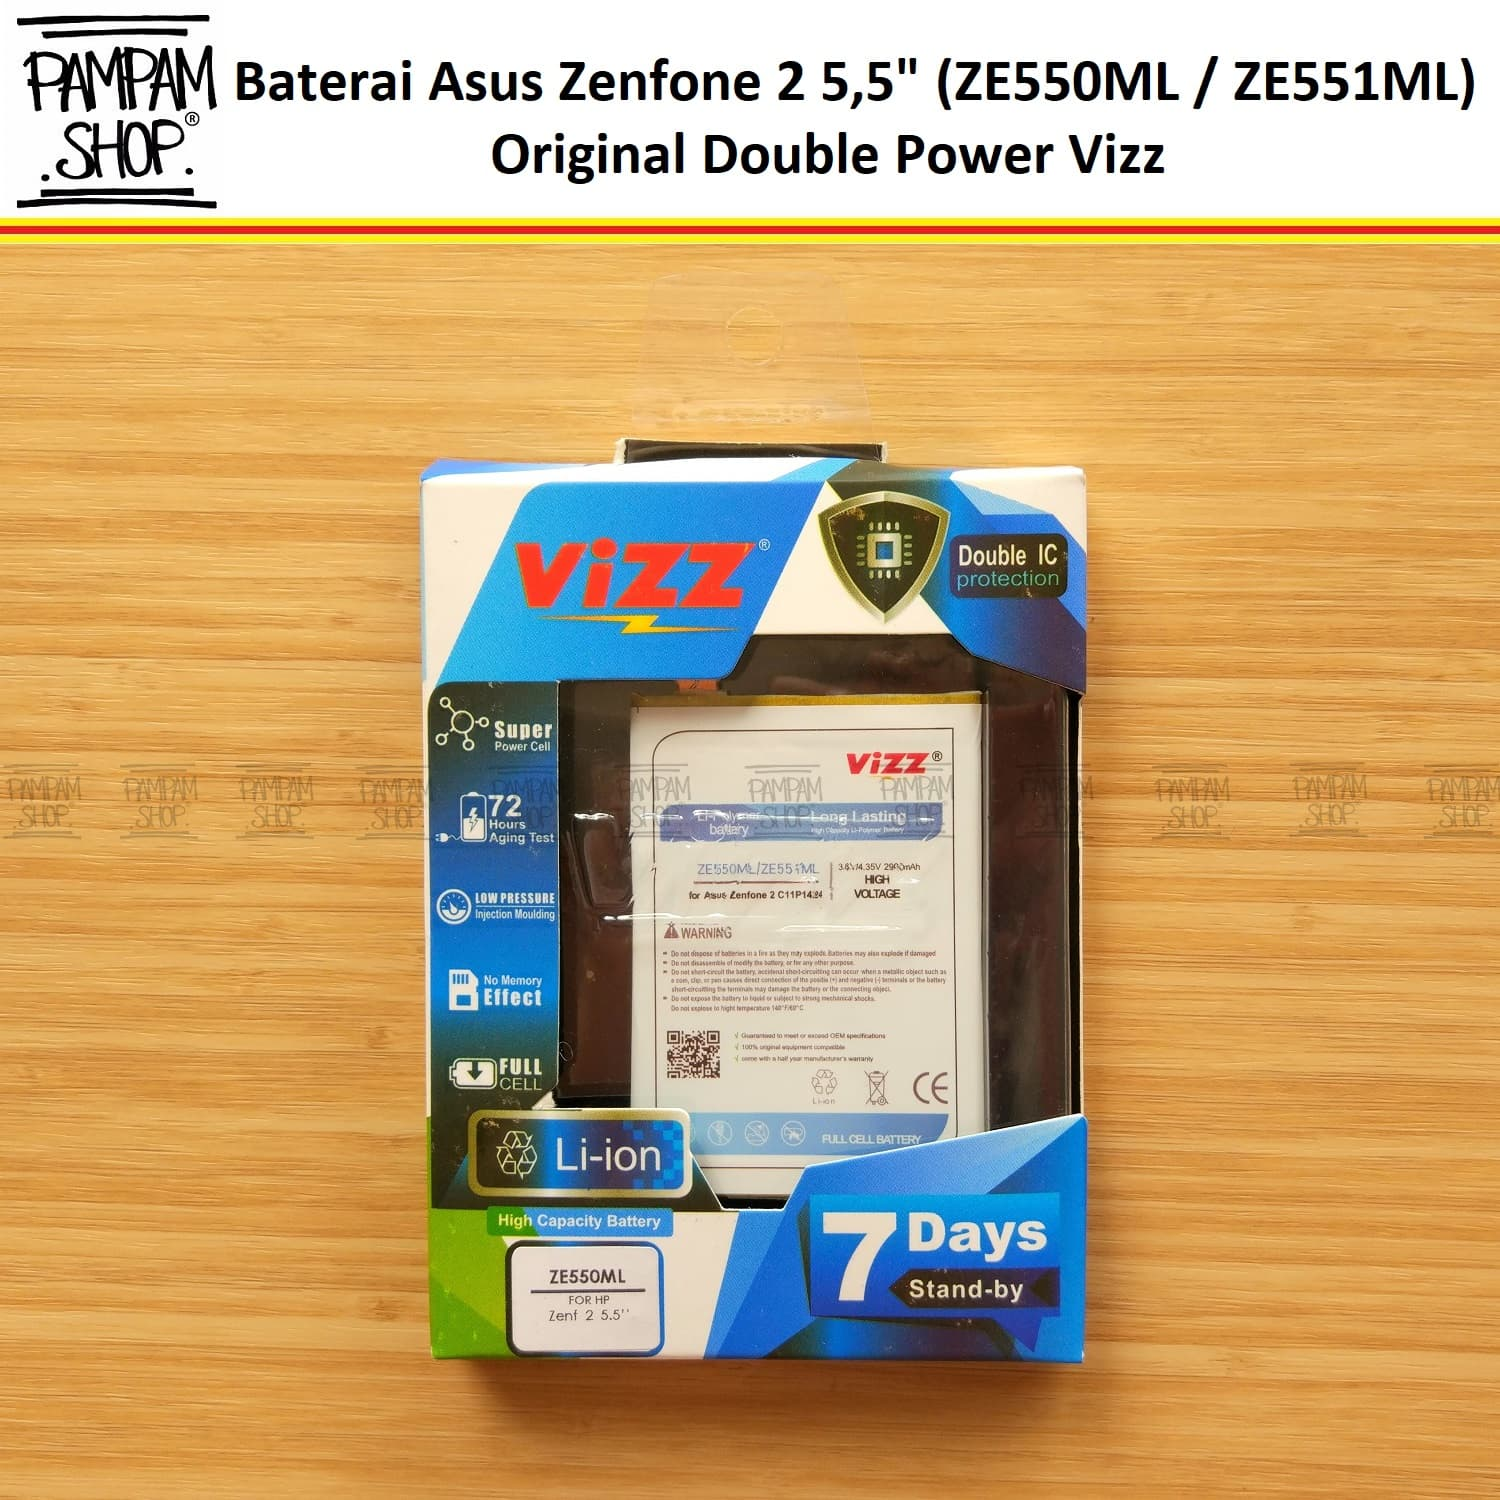 "Jual Baterai Vizz Double Power Asus Zenfone 2 5,5"" Inch ZE550ML Z00AD Batre - PAMPAM SHOP 